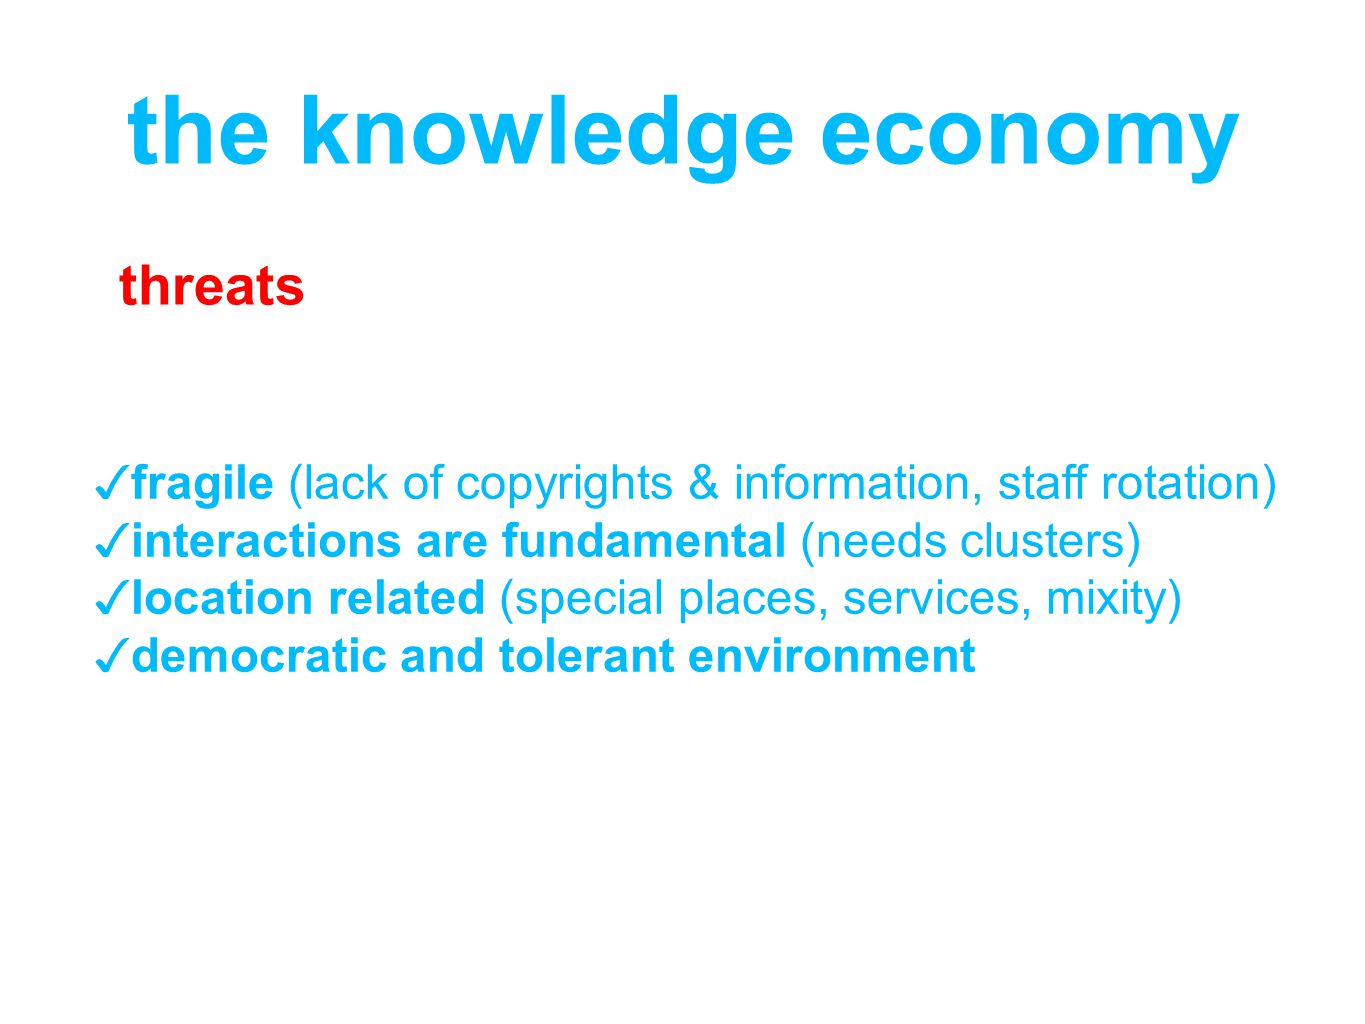 fragile (lack of copyrights & information, staff rotation) interactions are fundamental (needs clusters) location related (special places, services, mixity) democratic and tolerant environment the knowledge economy threats